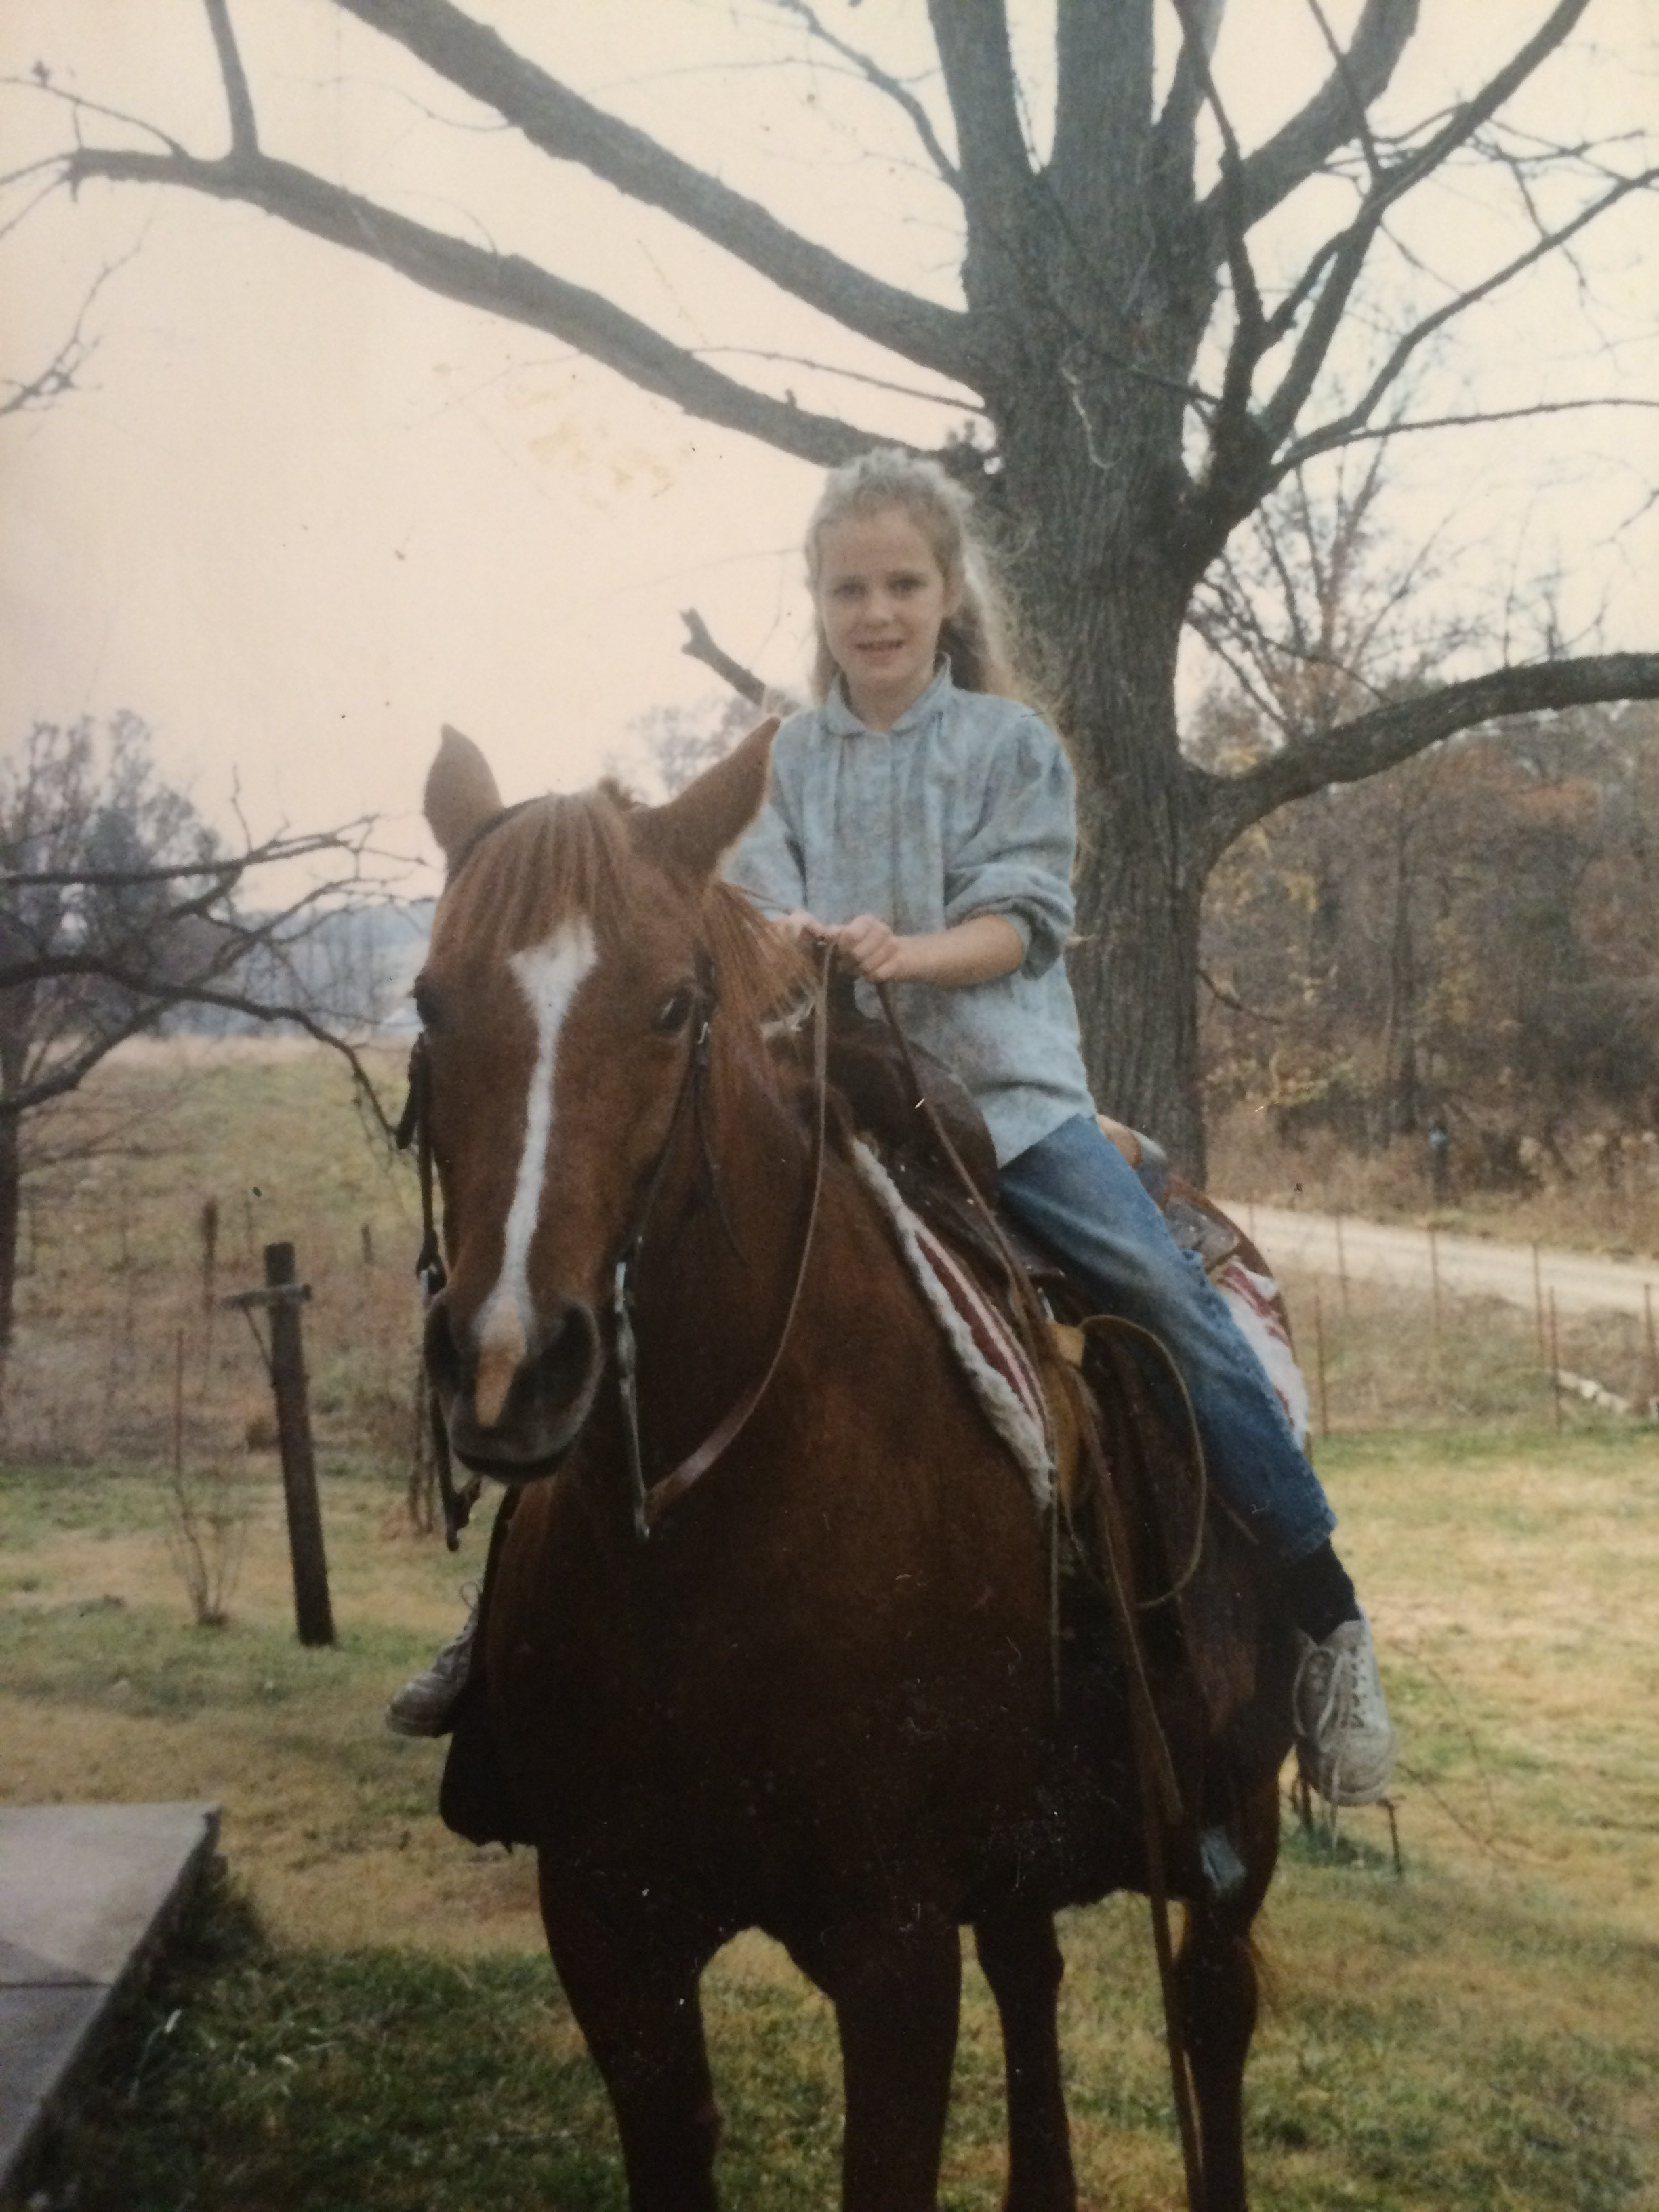 Me with our horse, Wendy. I Was almost 10 here.